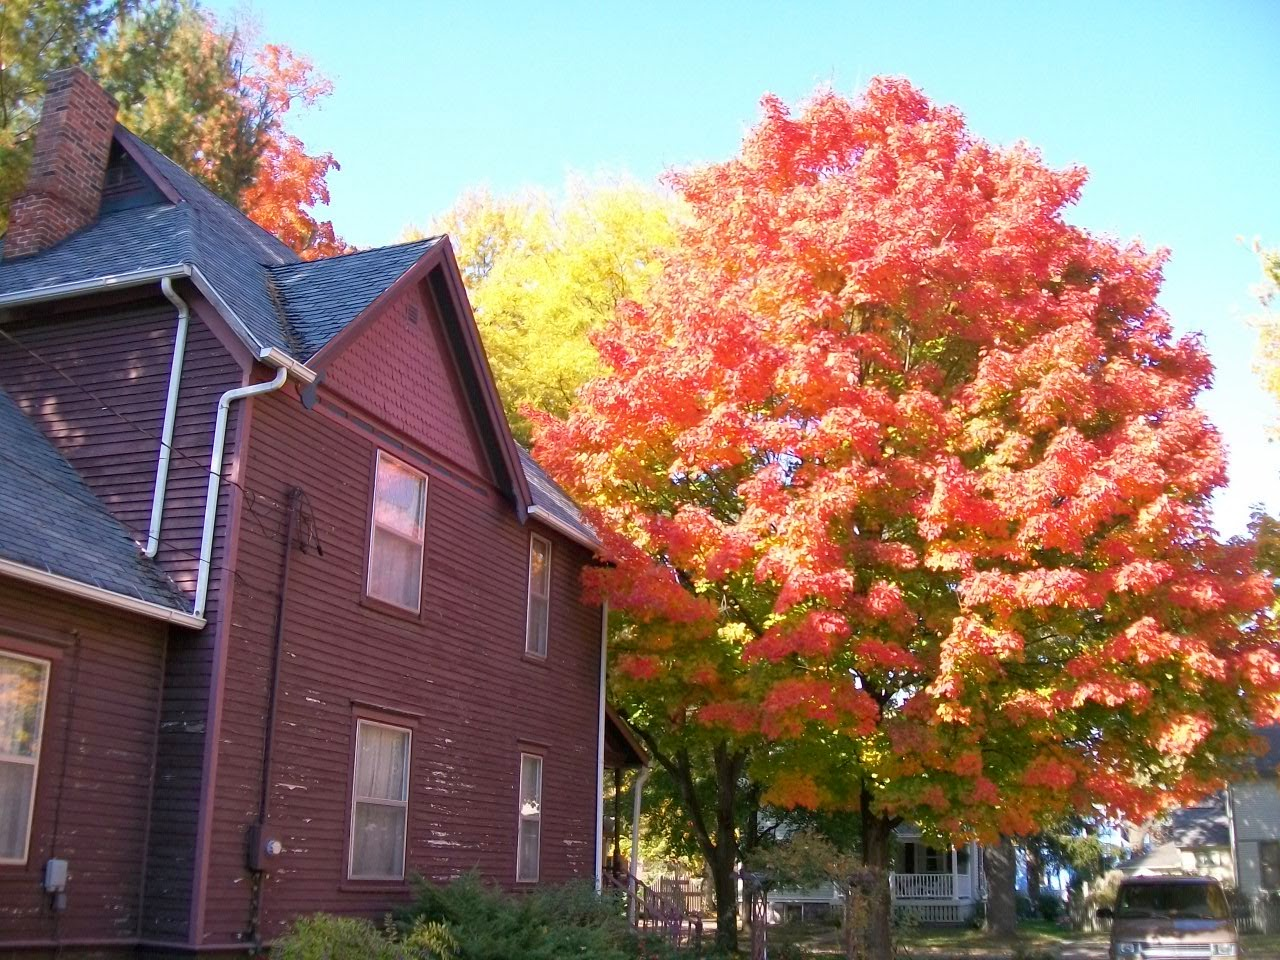 Fall at Plumfield